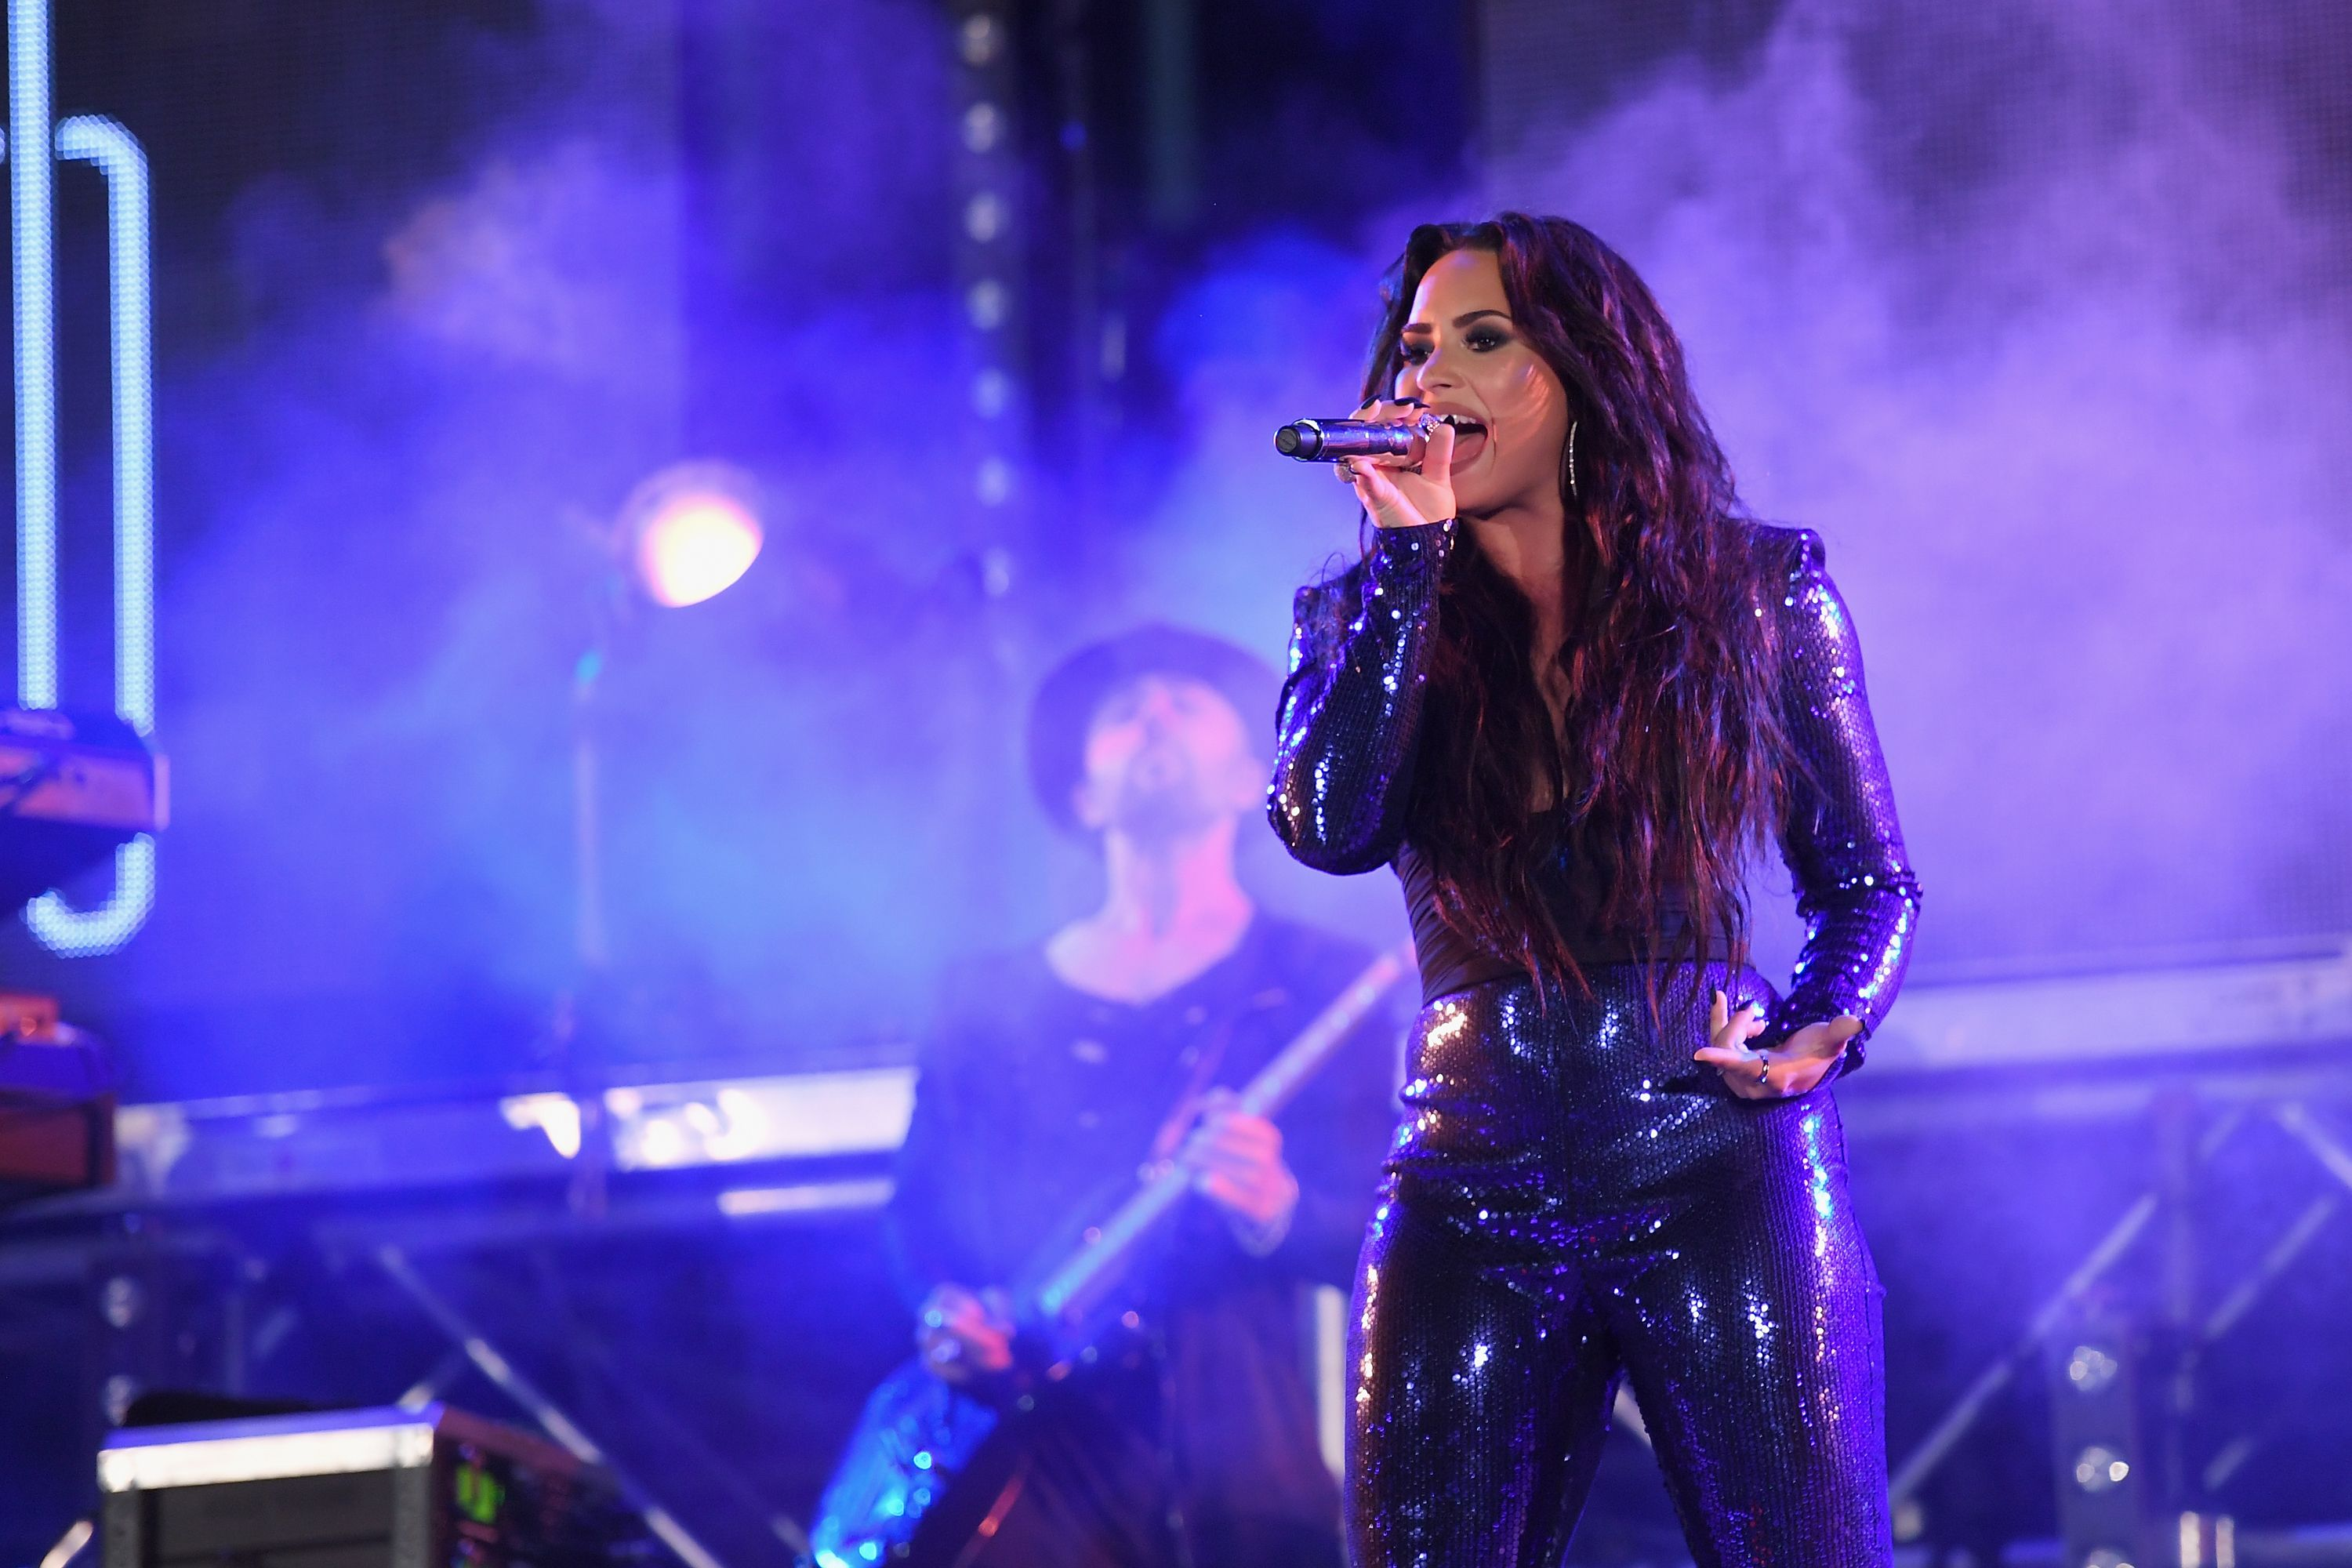 Everything You Need to Know About Demi Lovato's New Album